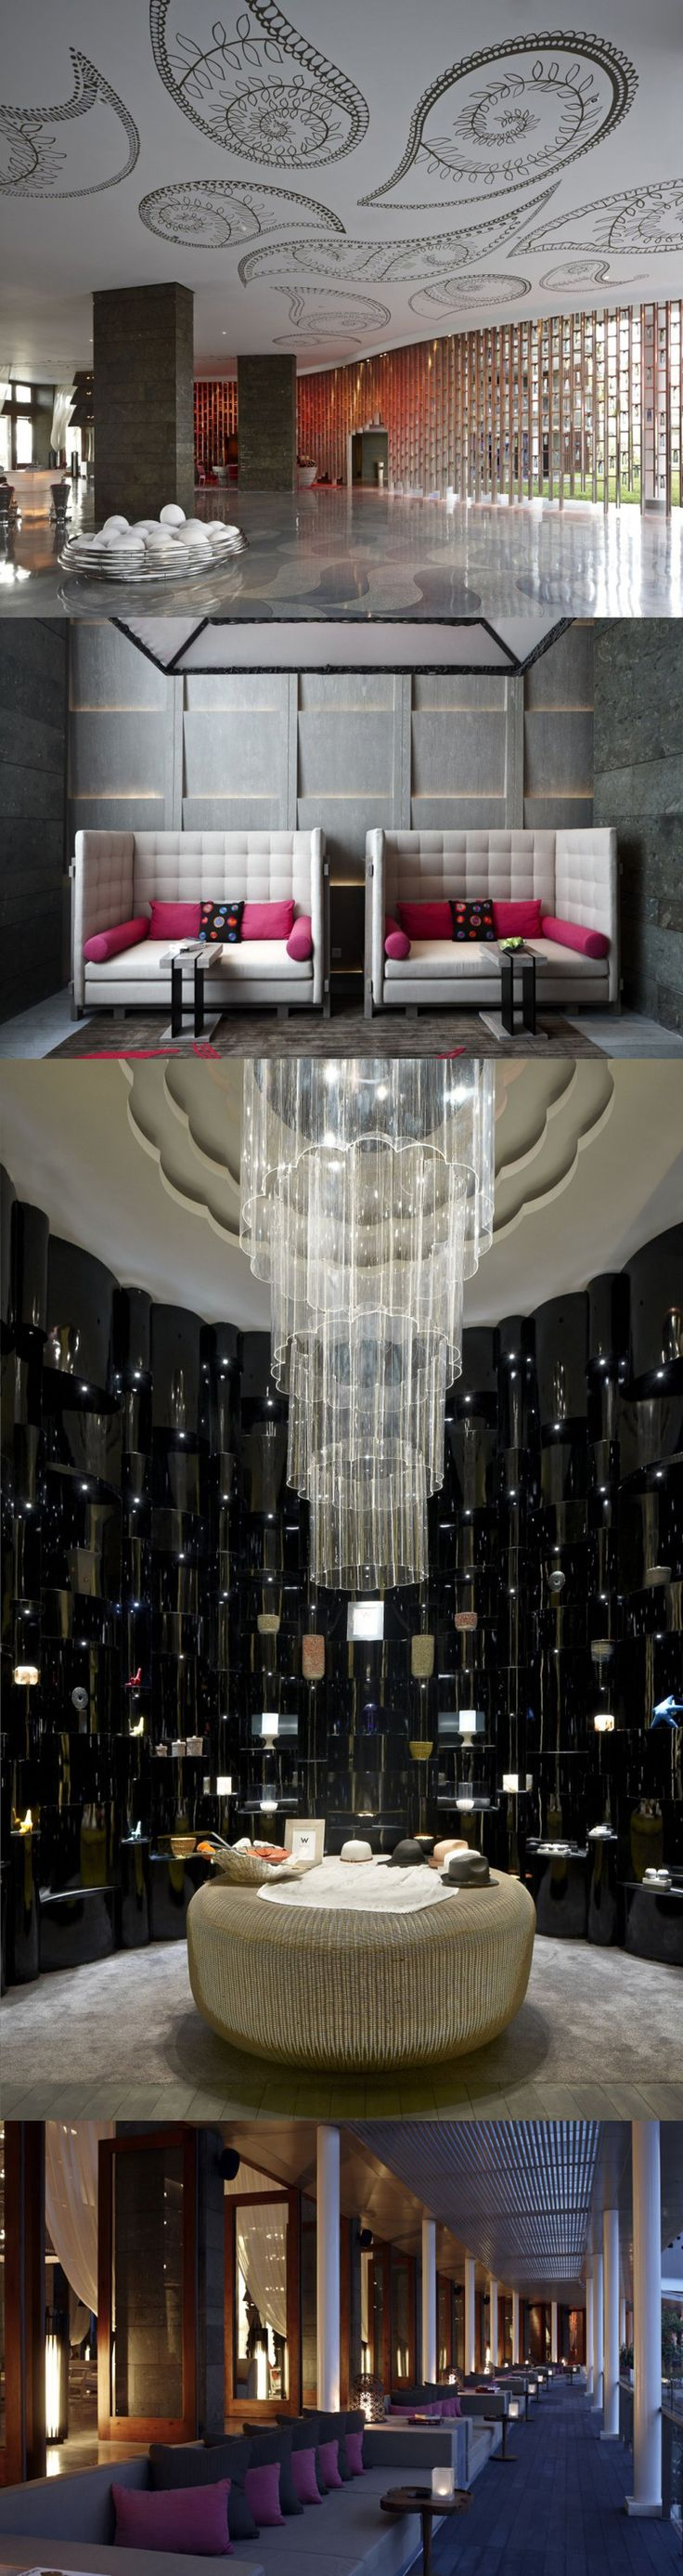 539 best CoMmErCiaL InTerioR images on Pinterest